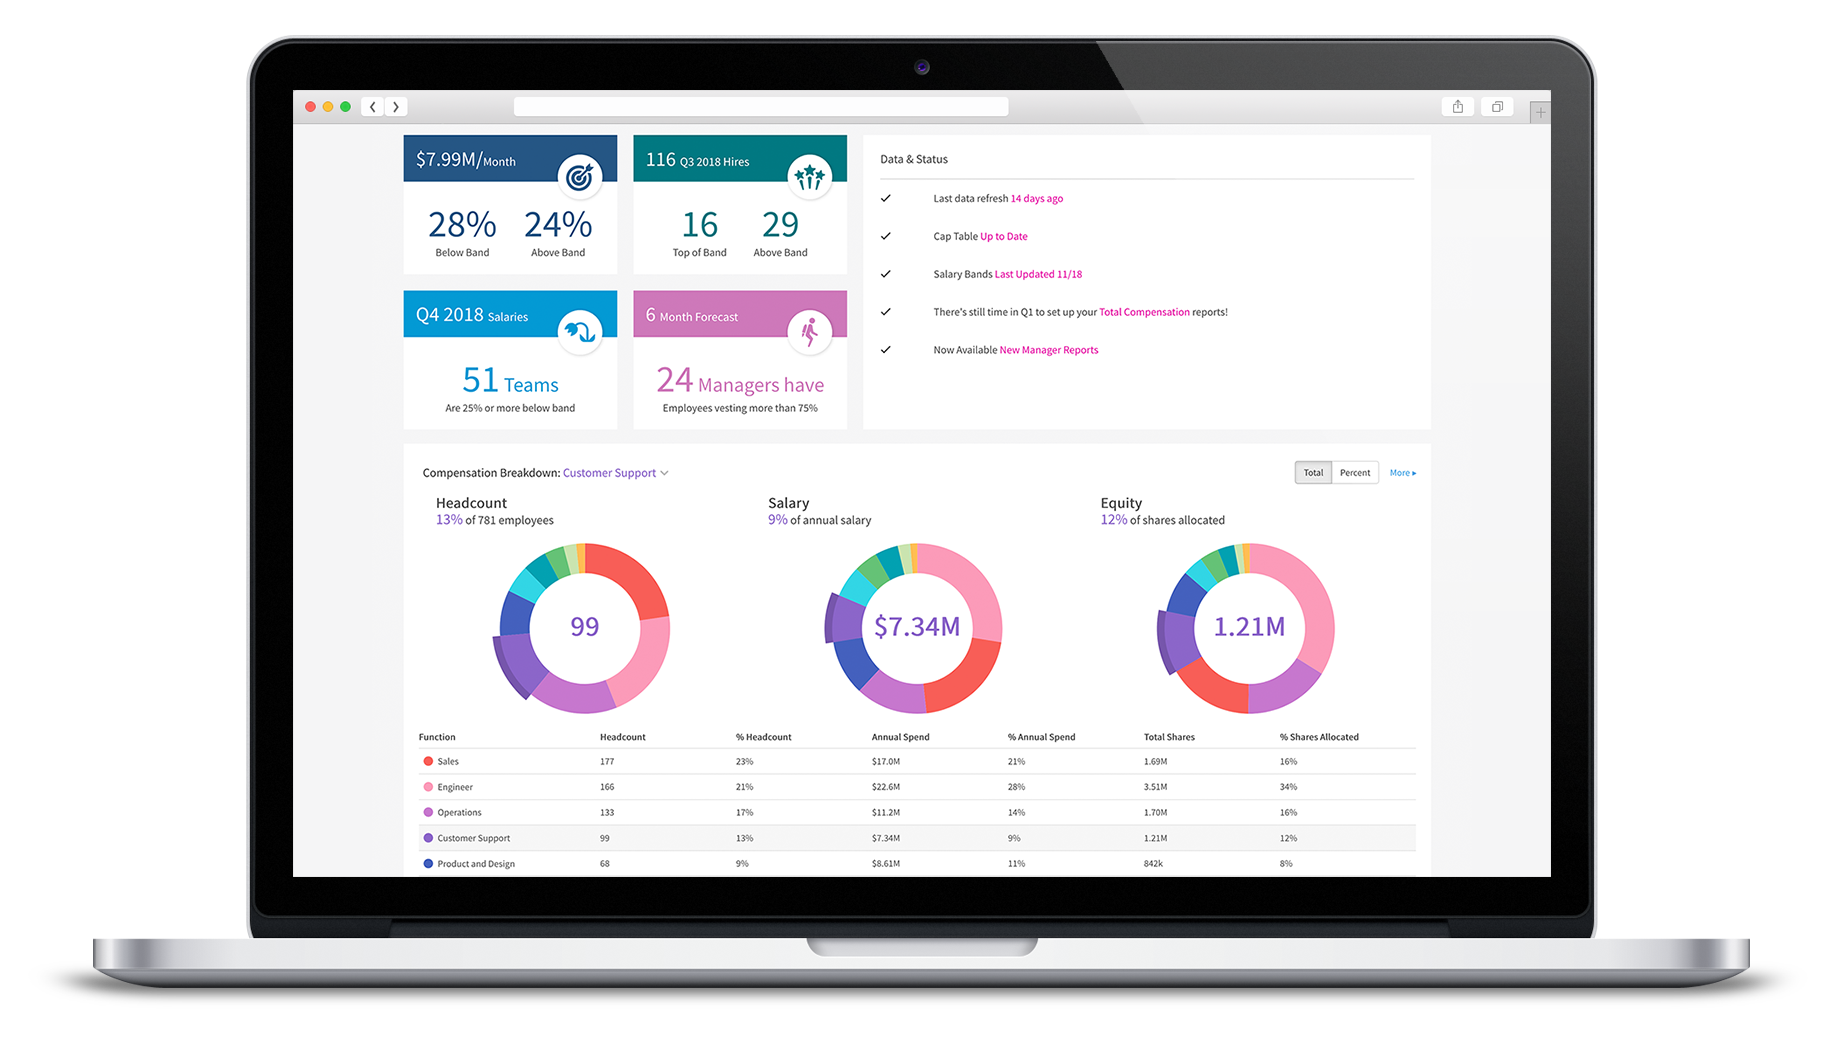 Compaas's compensation tool dashboard